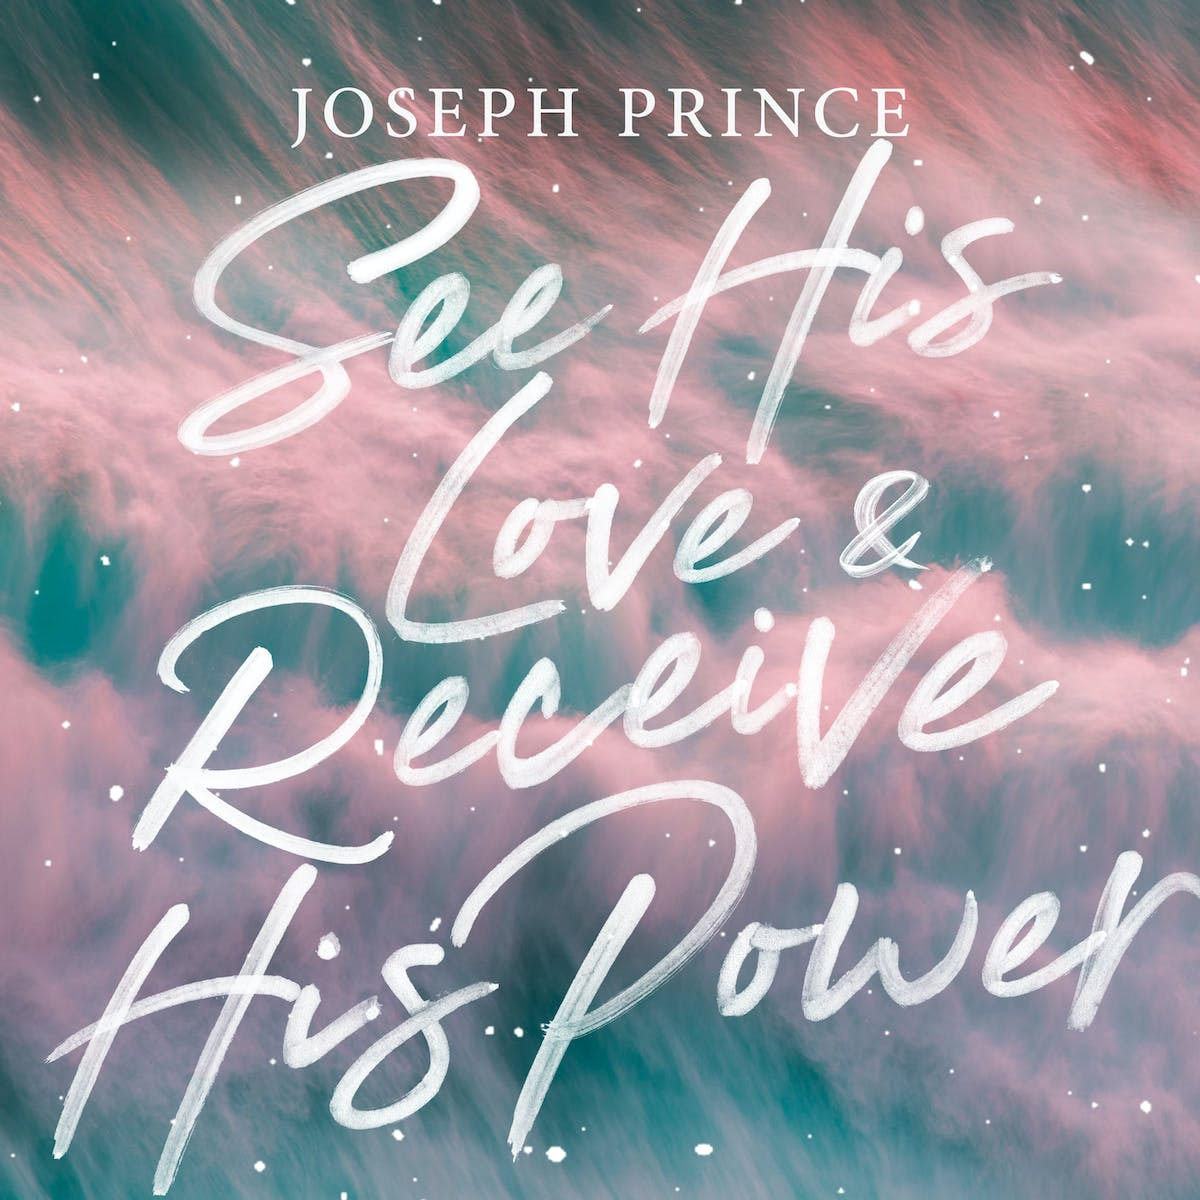 See His Love And Receive His Power | Official Joseph Prince